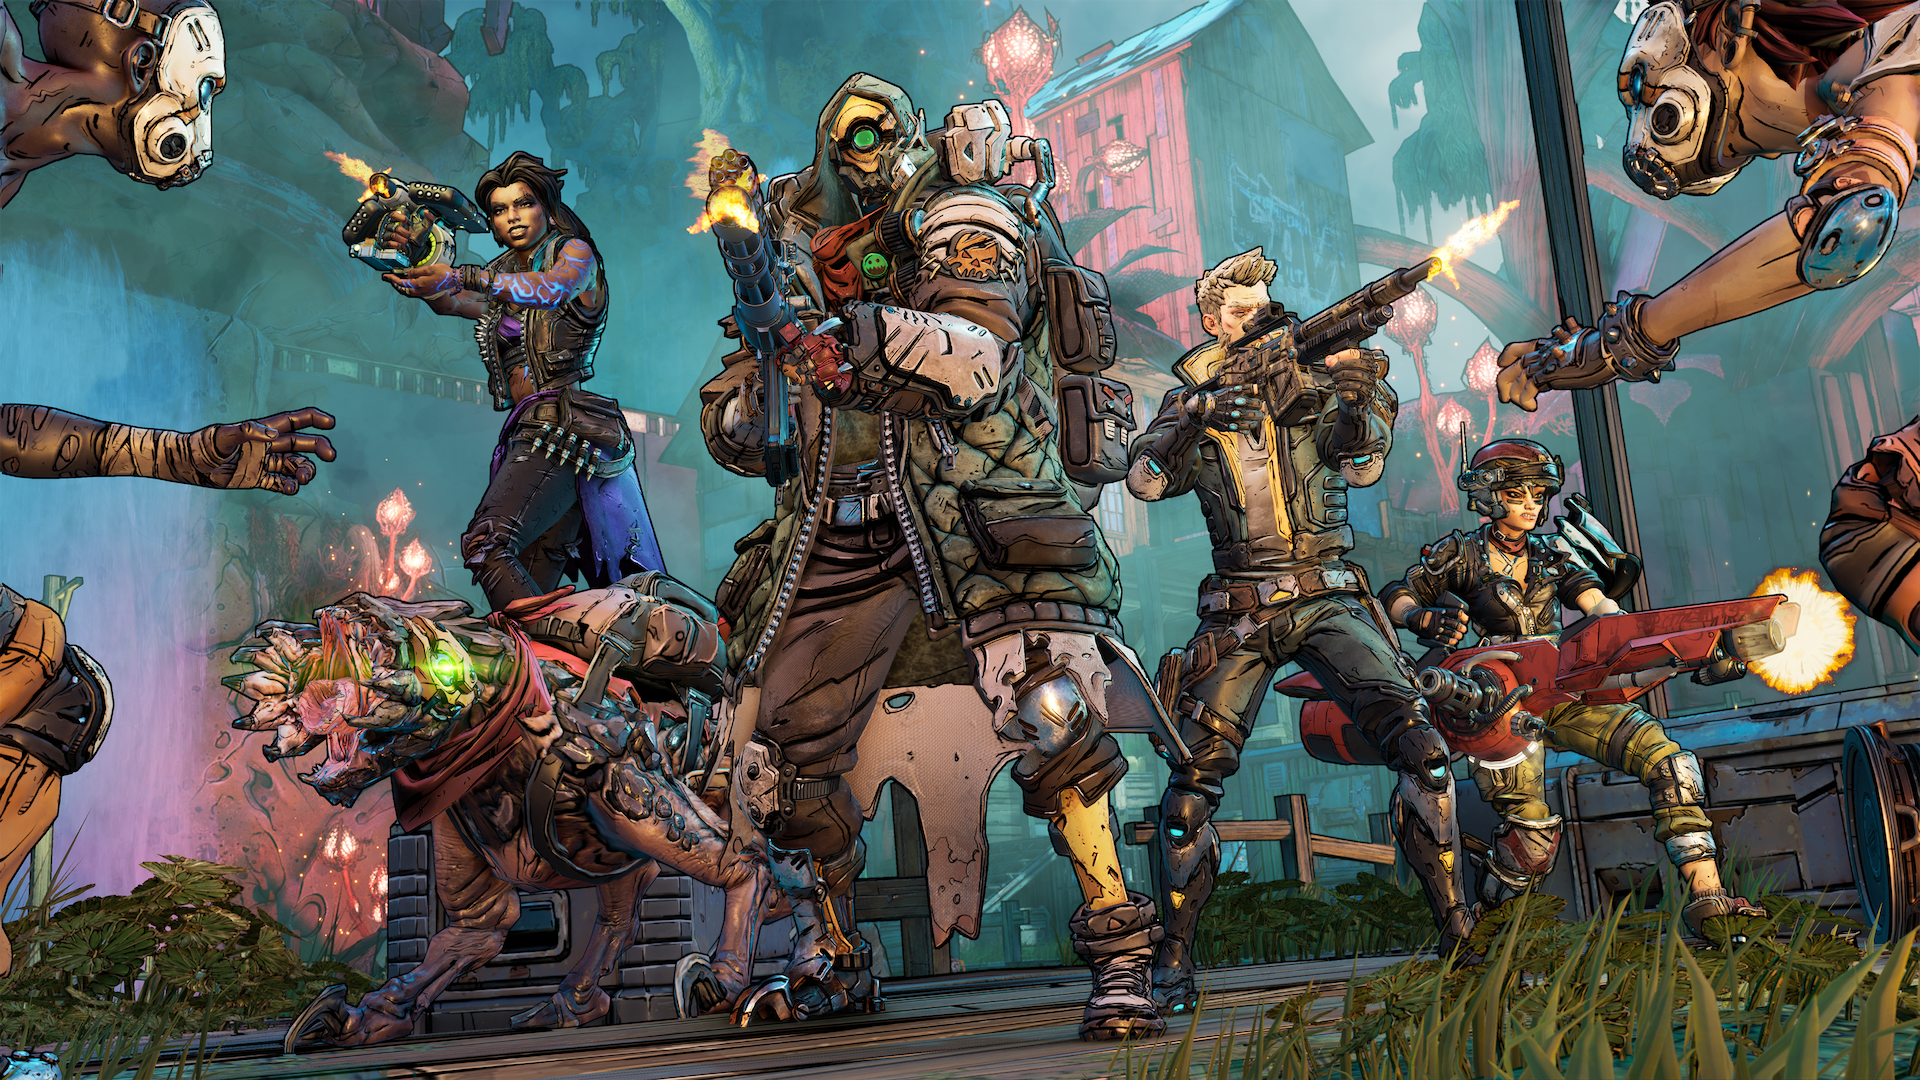 Which edition of Borderlands 3 should you buy?